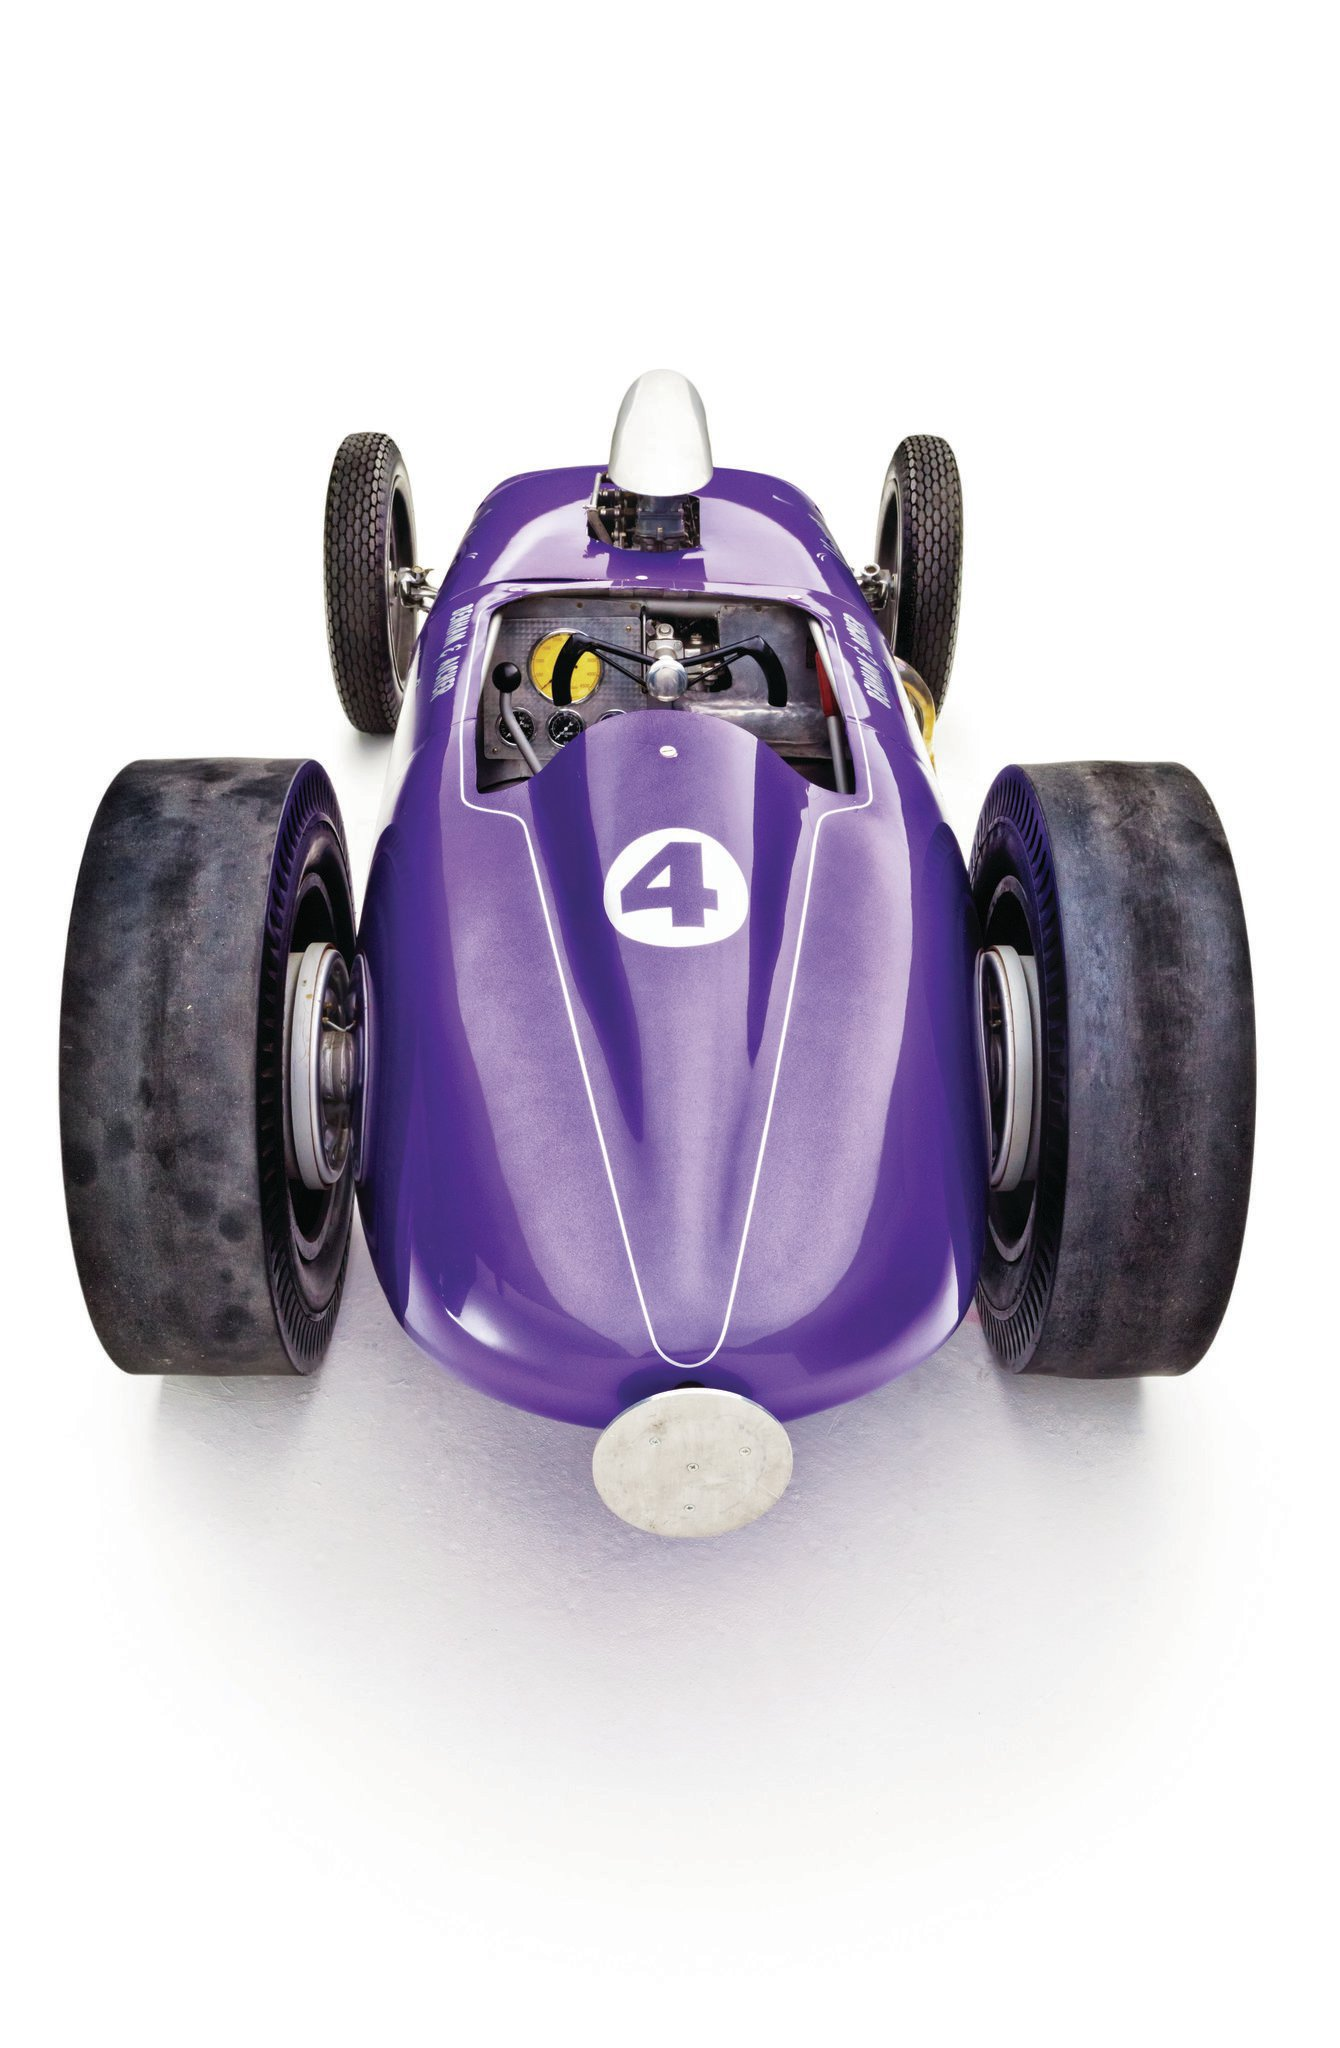 The Hisso has a low, sleek profile, which really stood out amongst the more stripped-down shortie dragsters it raced against.